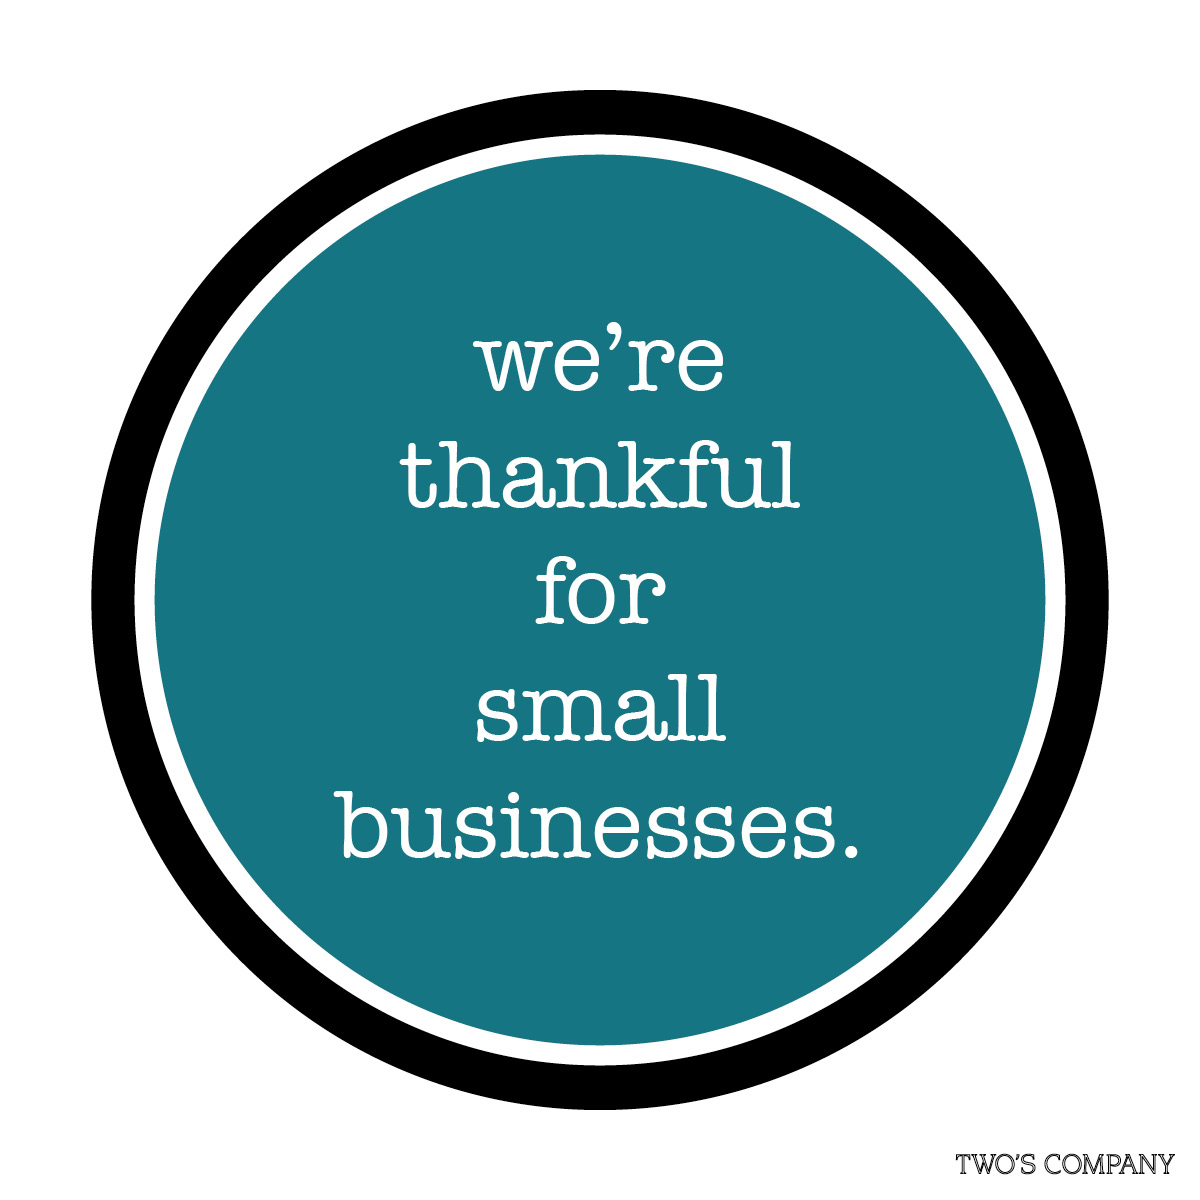 Where thankful for small business